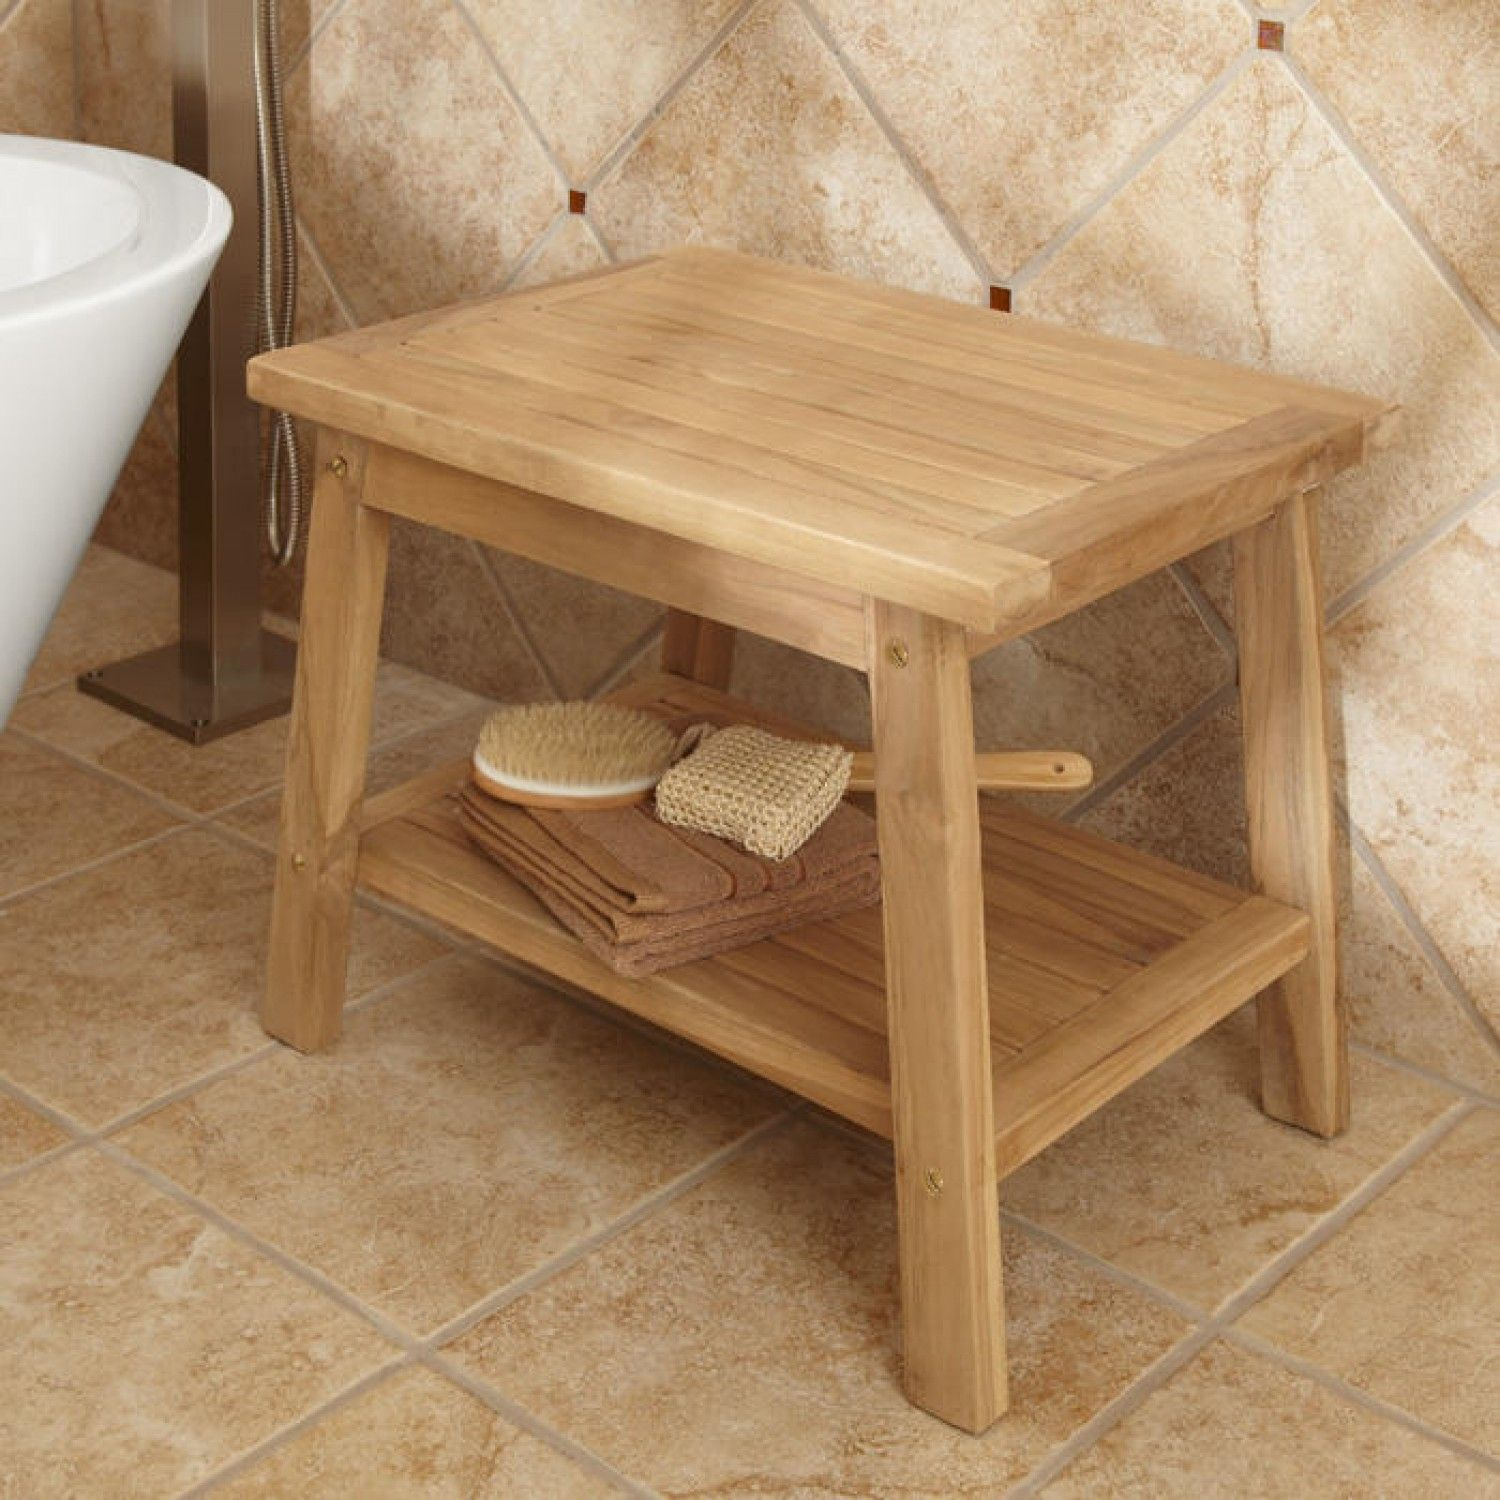 Teak Shower Stool with Shelf - ADA Compliant | Teak shower stool ...